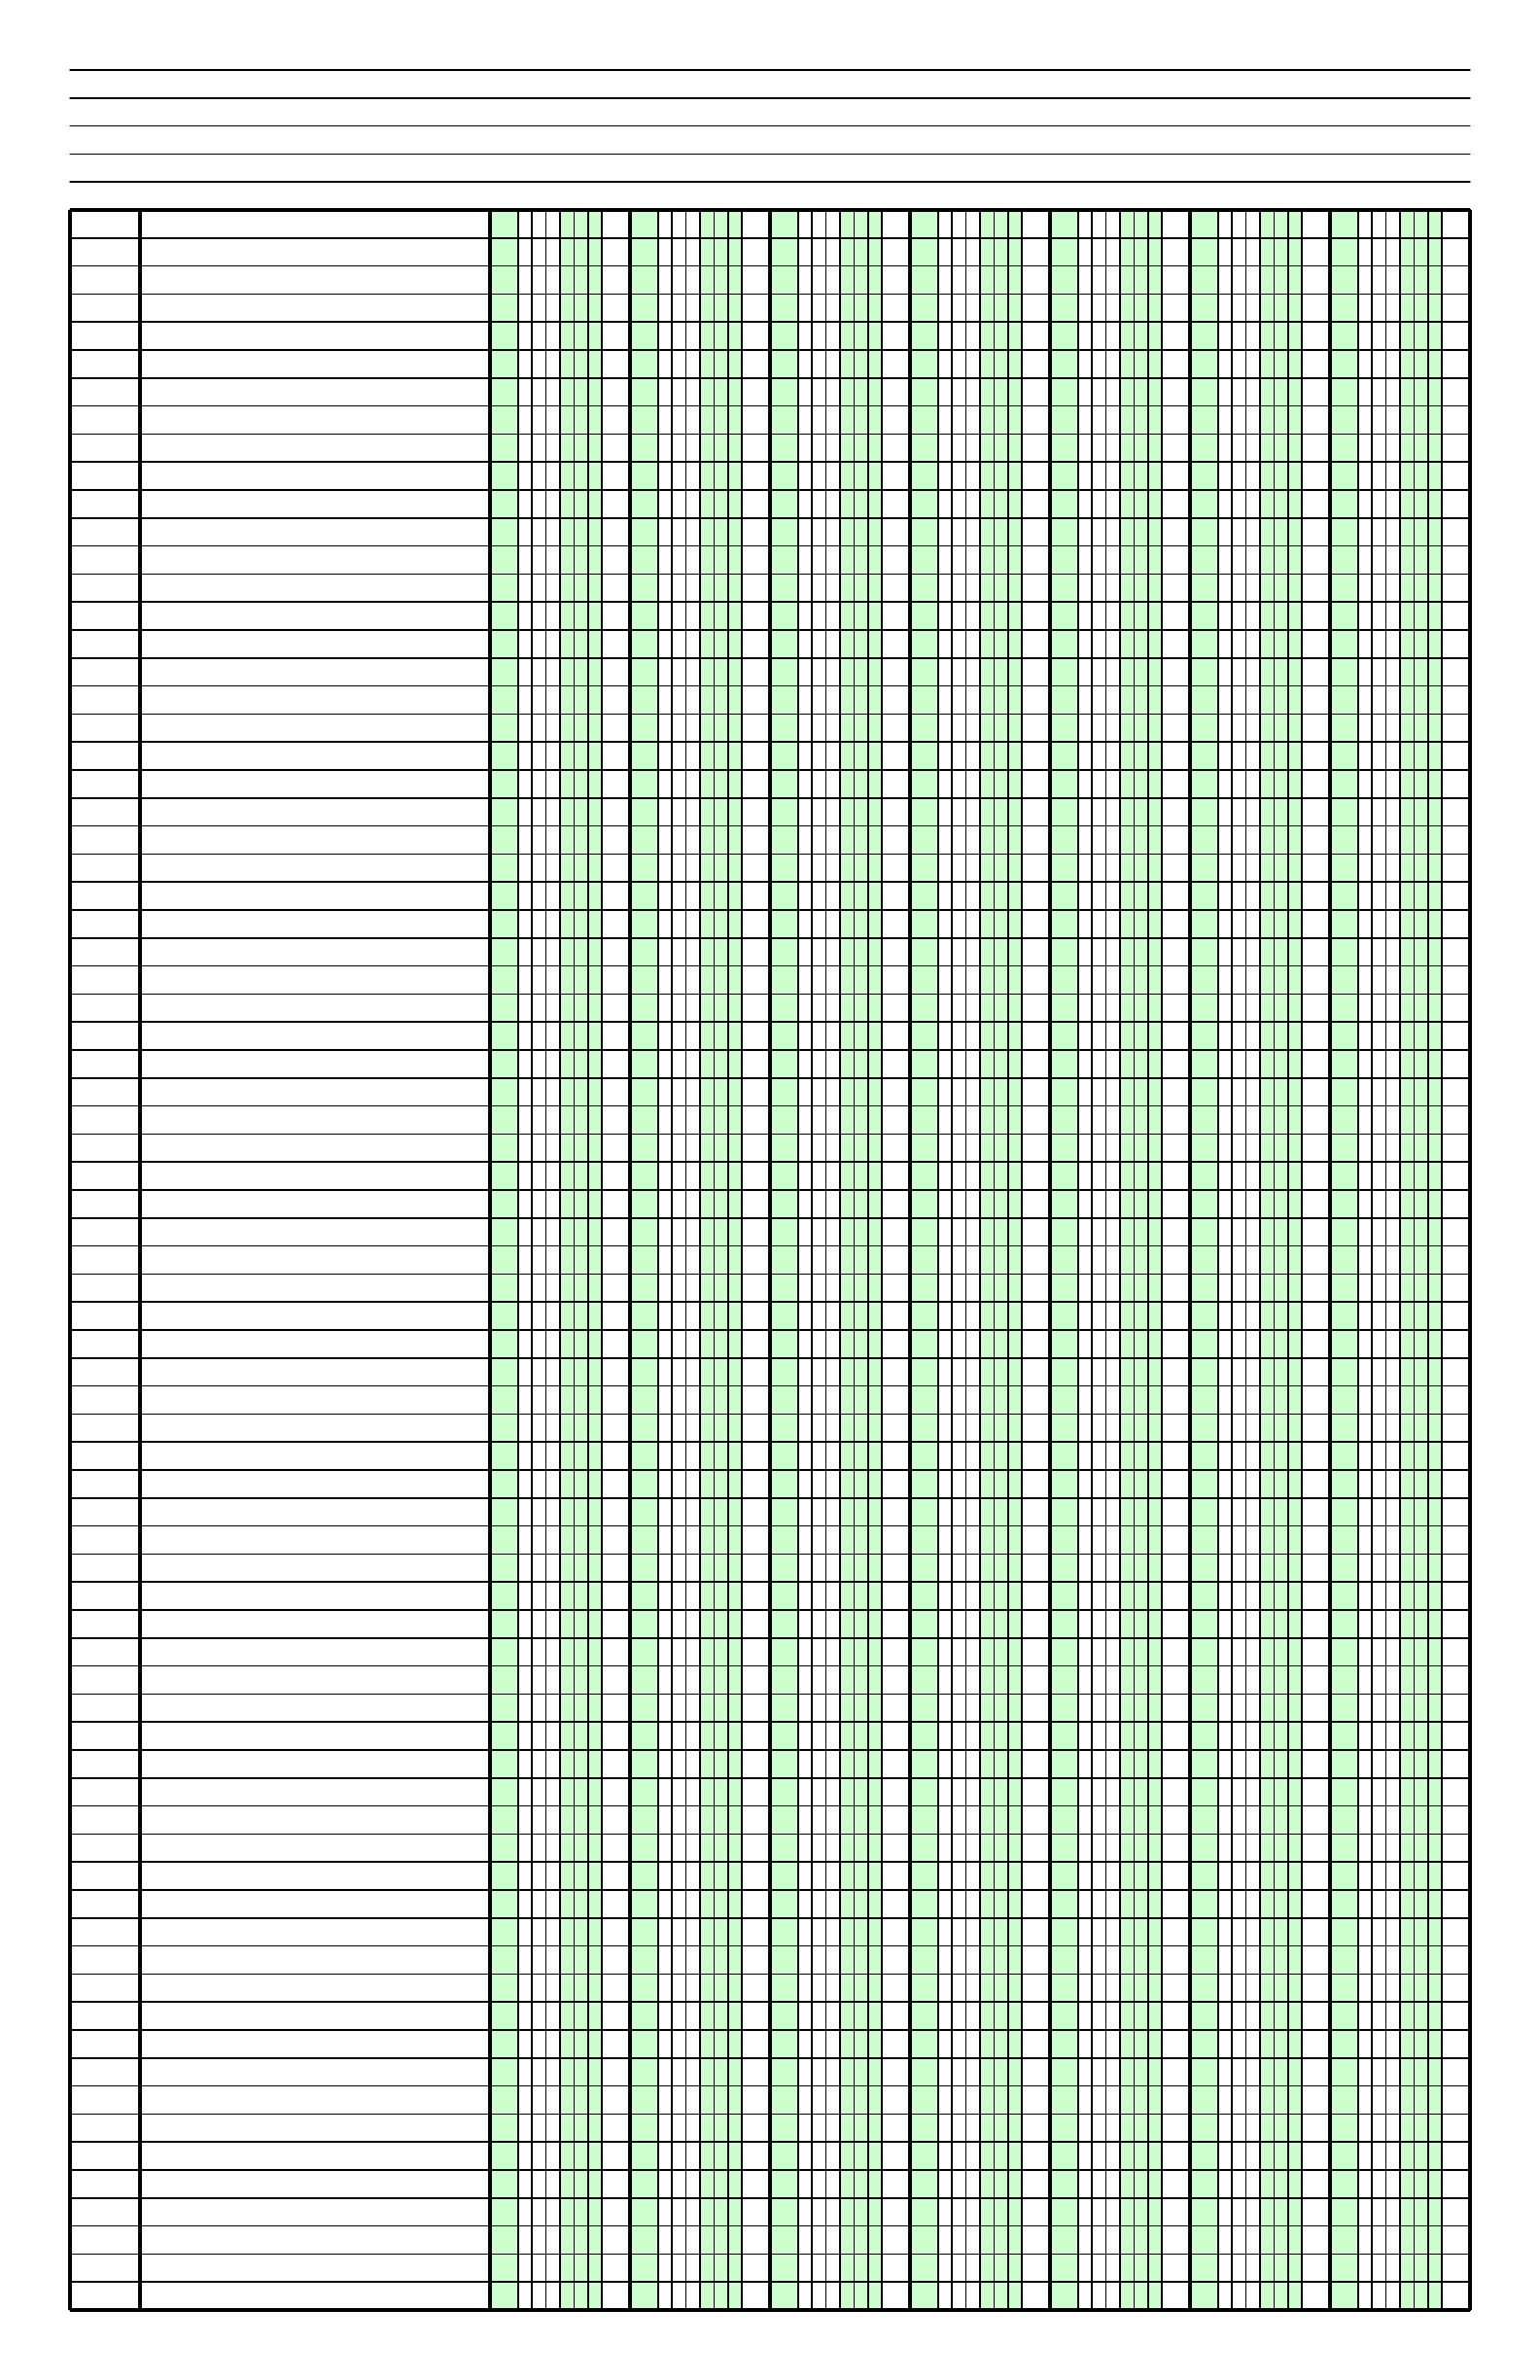 Columnar Paper With Seven Columns On Ledger Sized Paper In